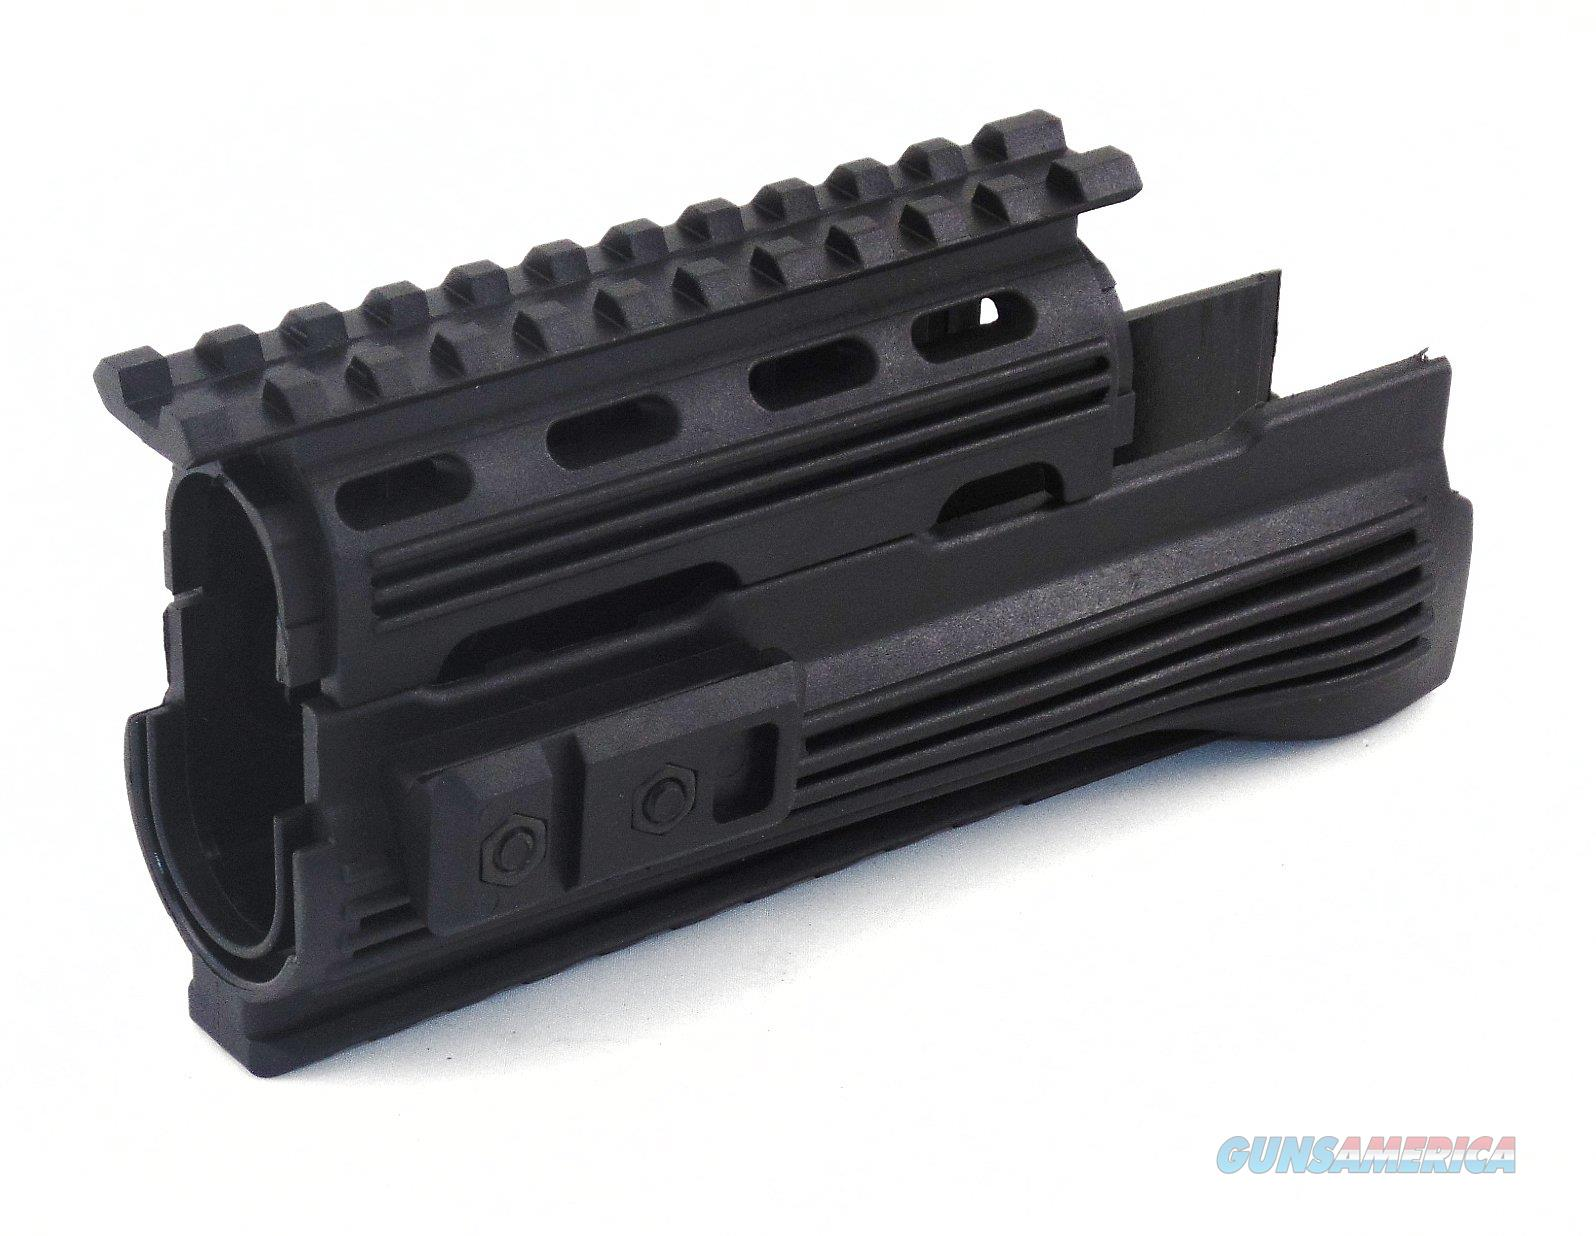 AK Polymer Quad Rail System STK-TBTAKHGP  Non-Guns > Gun Parts > Grips > Other